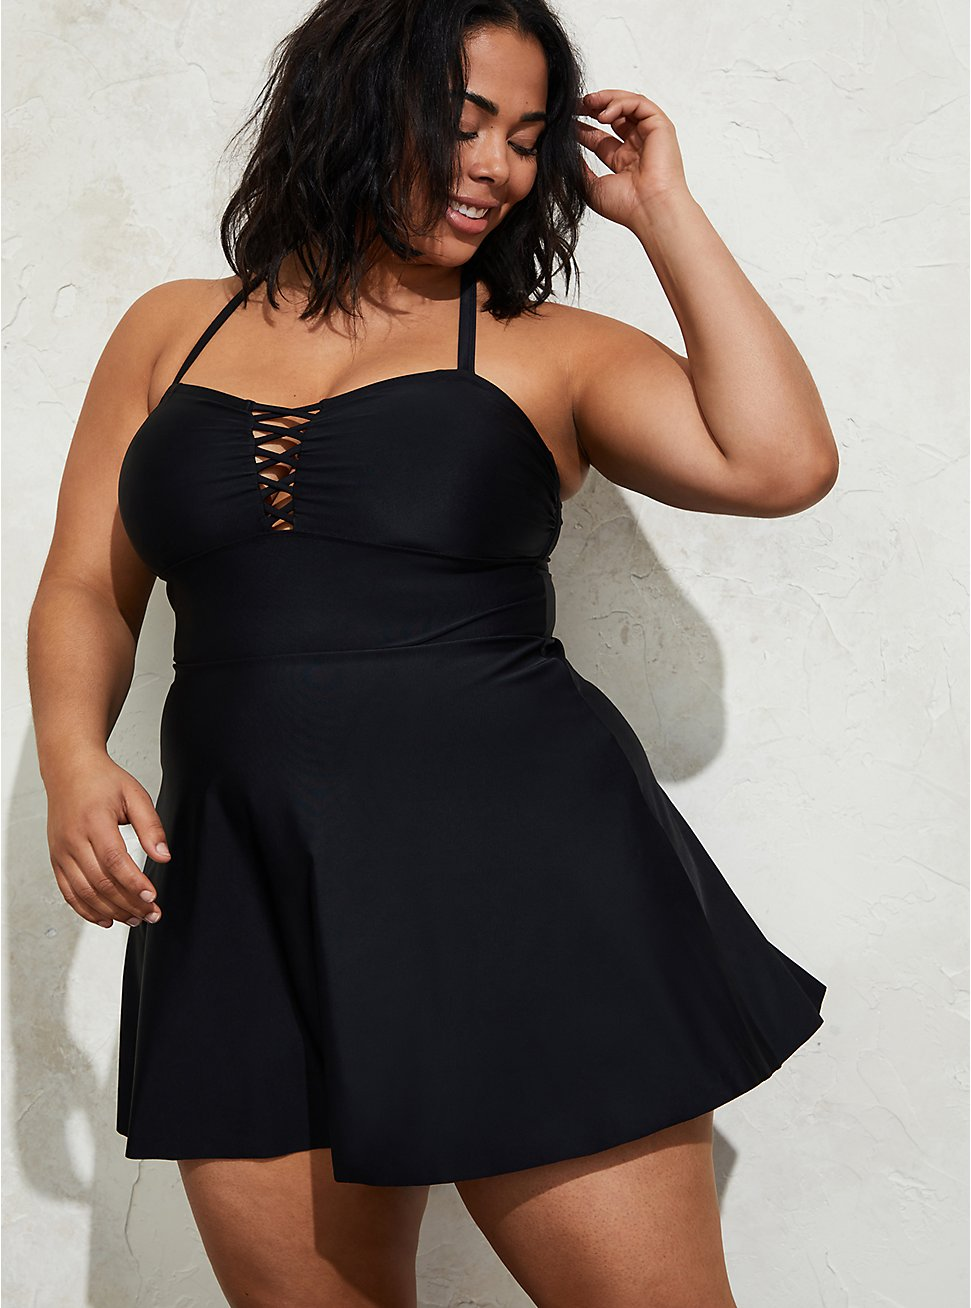 Black Crisscross Peplum Swim Dress - Long, , hi-res